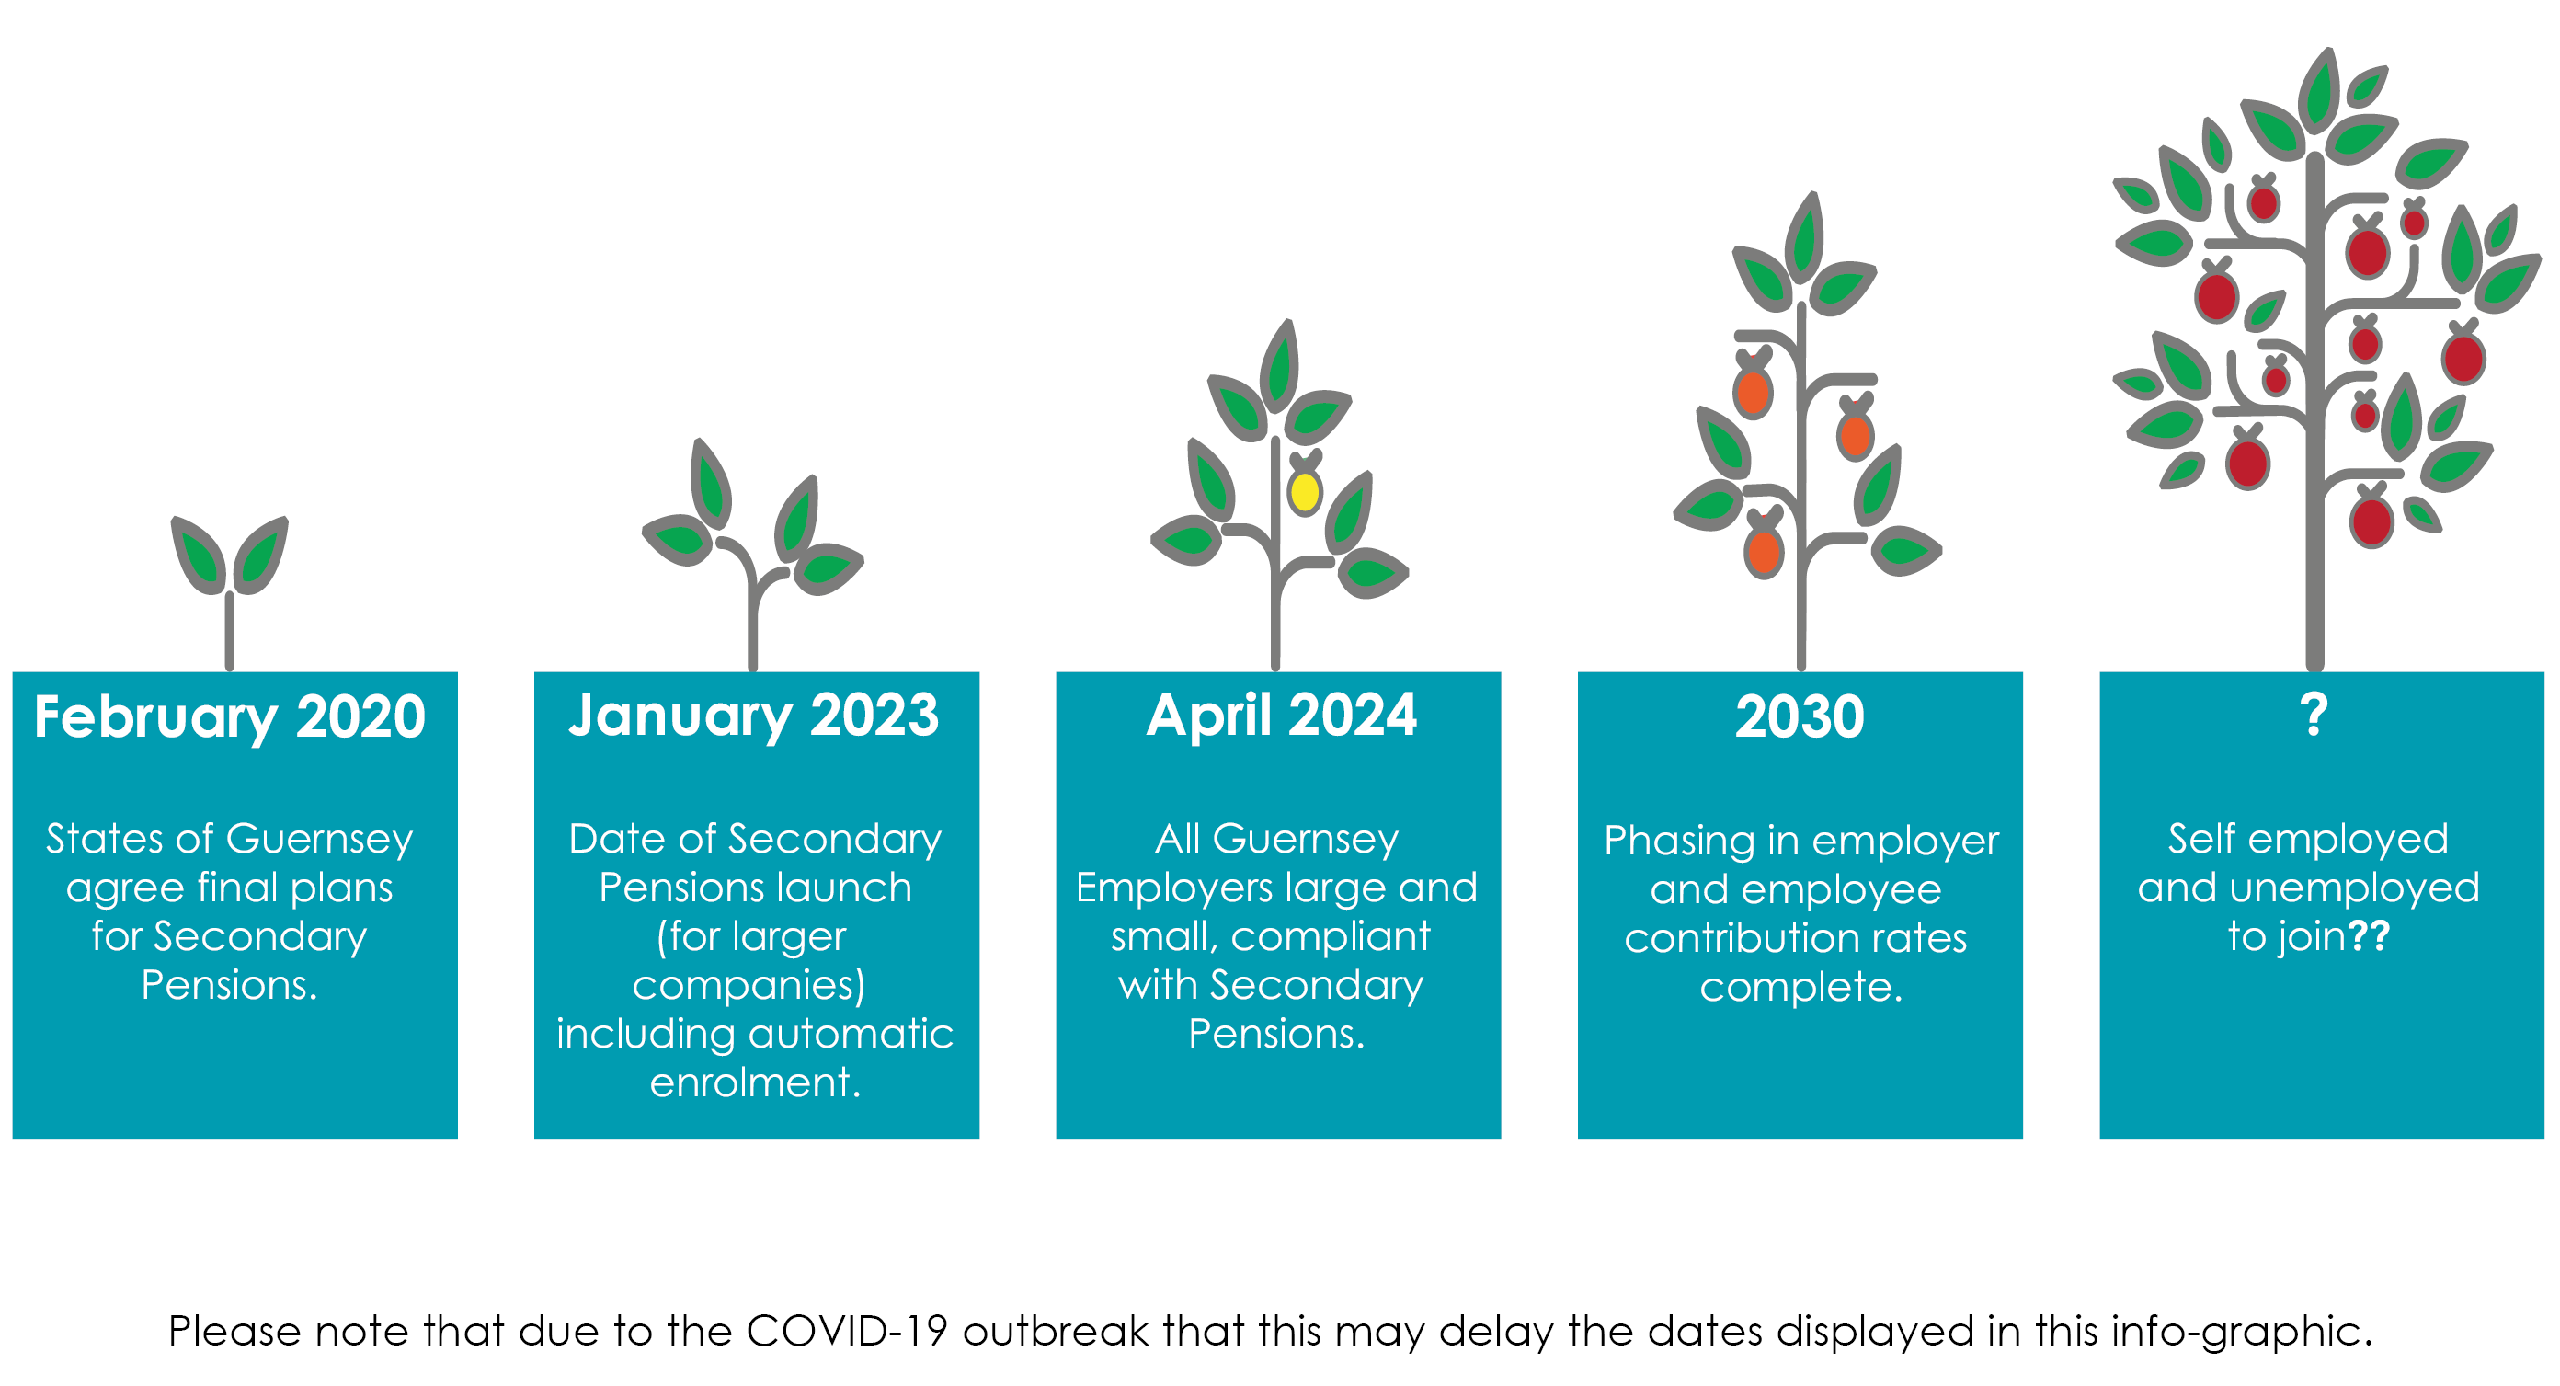 The Development of Secondary Pensions in Guernsey: February 2020 States of Guernsey agree final plans for Secondary Pensions. January 2022 Date of Secondary Pensions Launch (for larger compainies) including automatic enrolment. April 2023 All Guernsey Employers Large and small, compluant with Secondary Pensions. 2029 Phasing in employer and employee contribution rates complete. ? Self employed and unemployed to join??